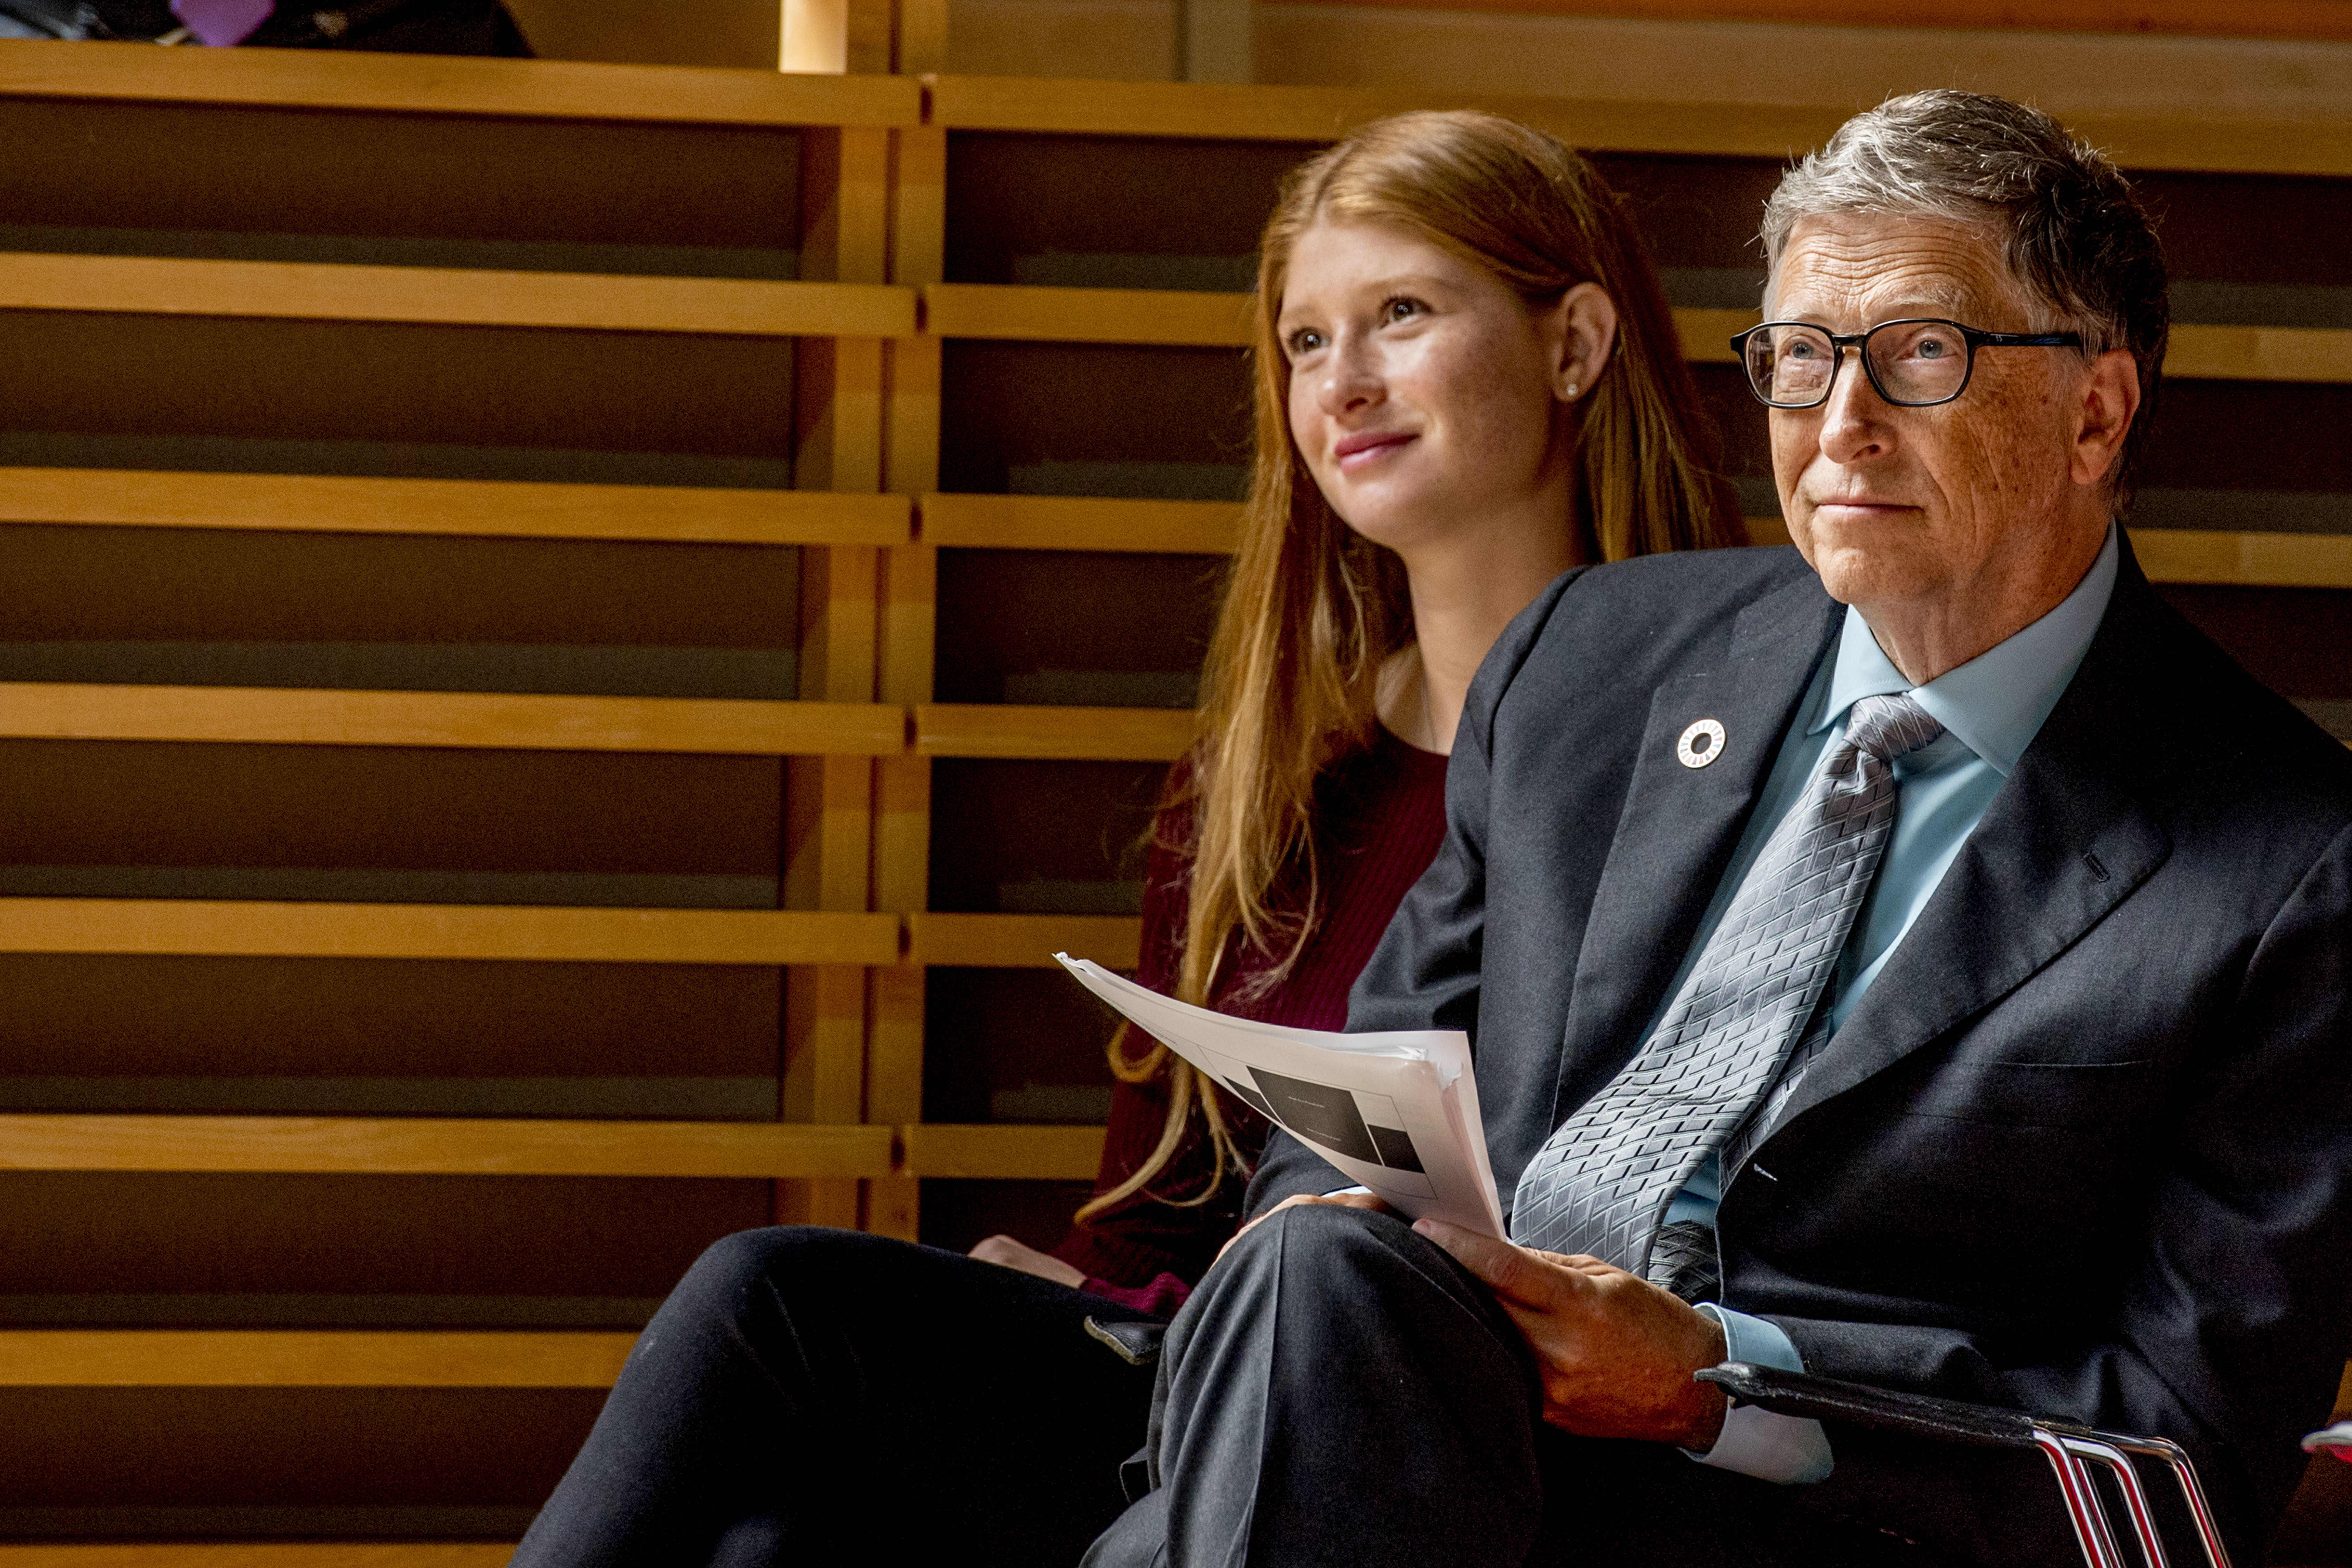 Bill Gates with daughter